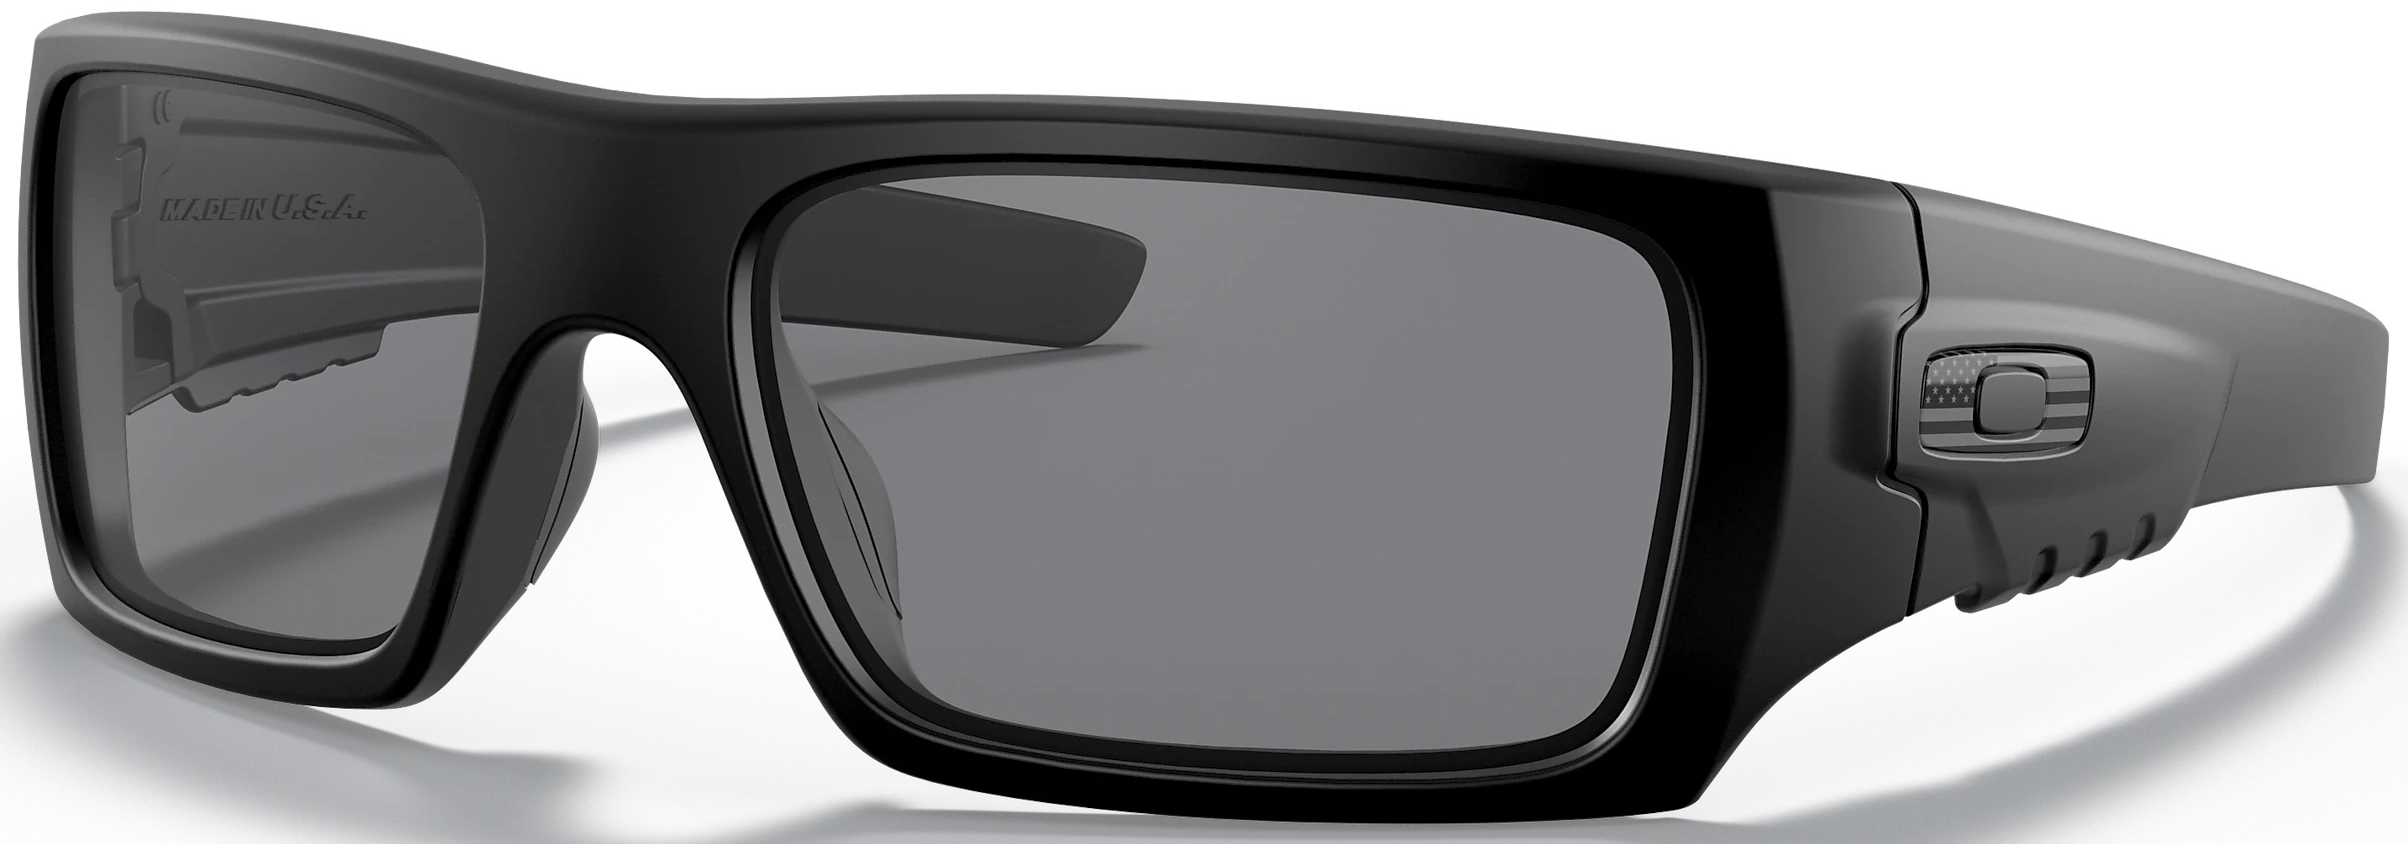 Standard Issue Det-Cord with USA Flag Emblem in Grey and Grey Lenses, Angled to the Side Left